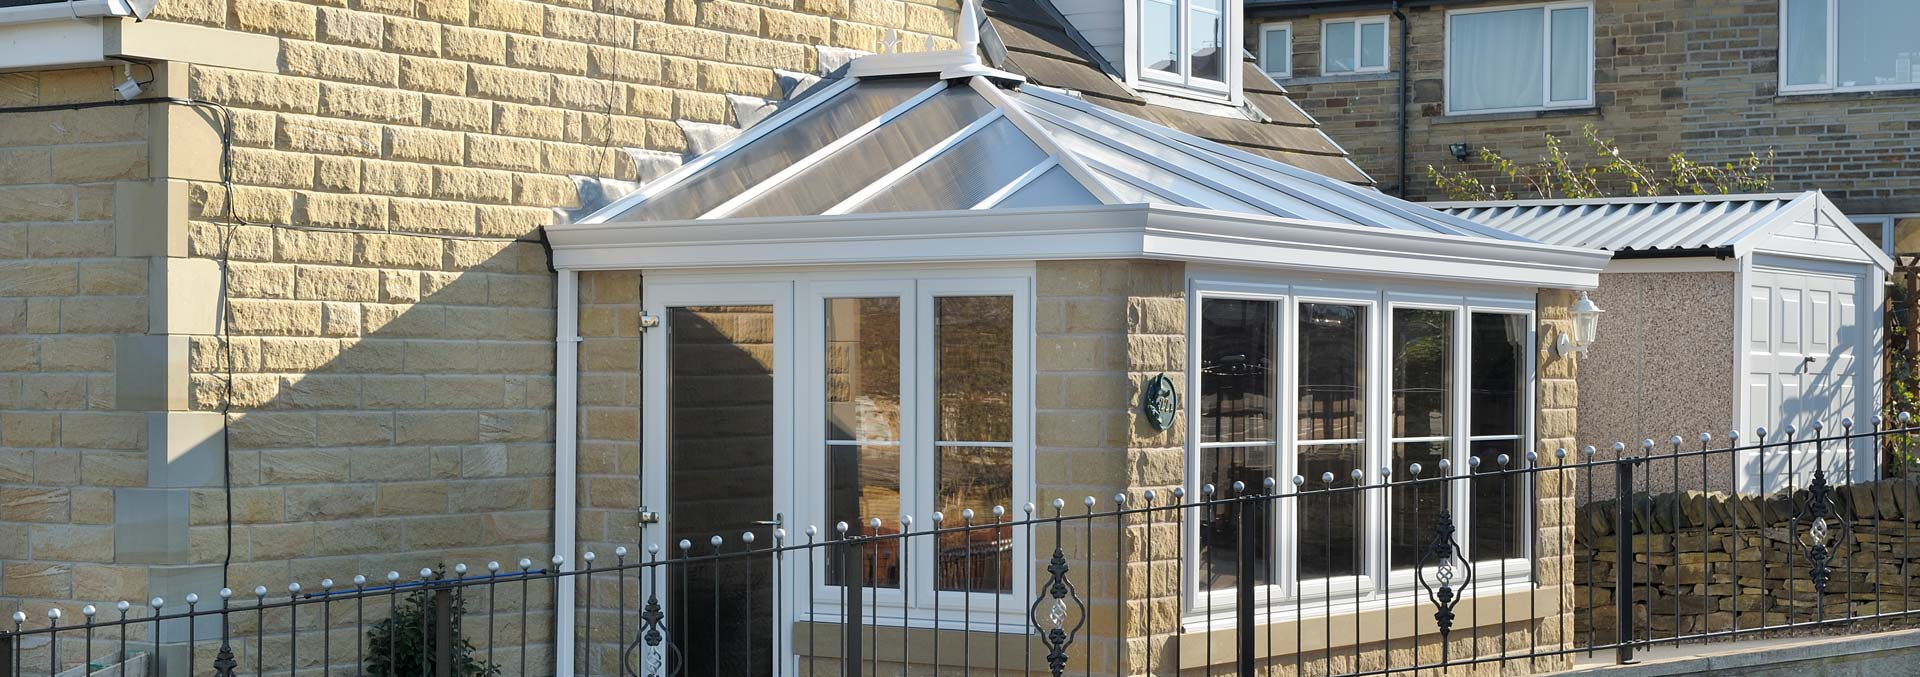 Orangery build with brick structure and uPVC windows, doors and roof